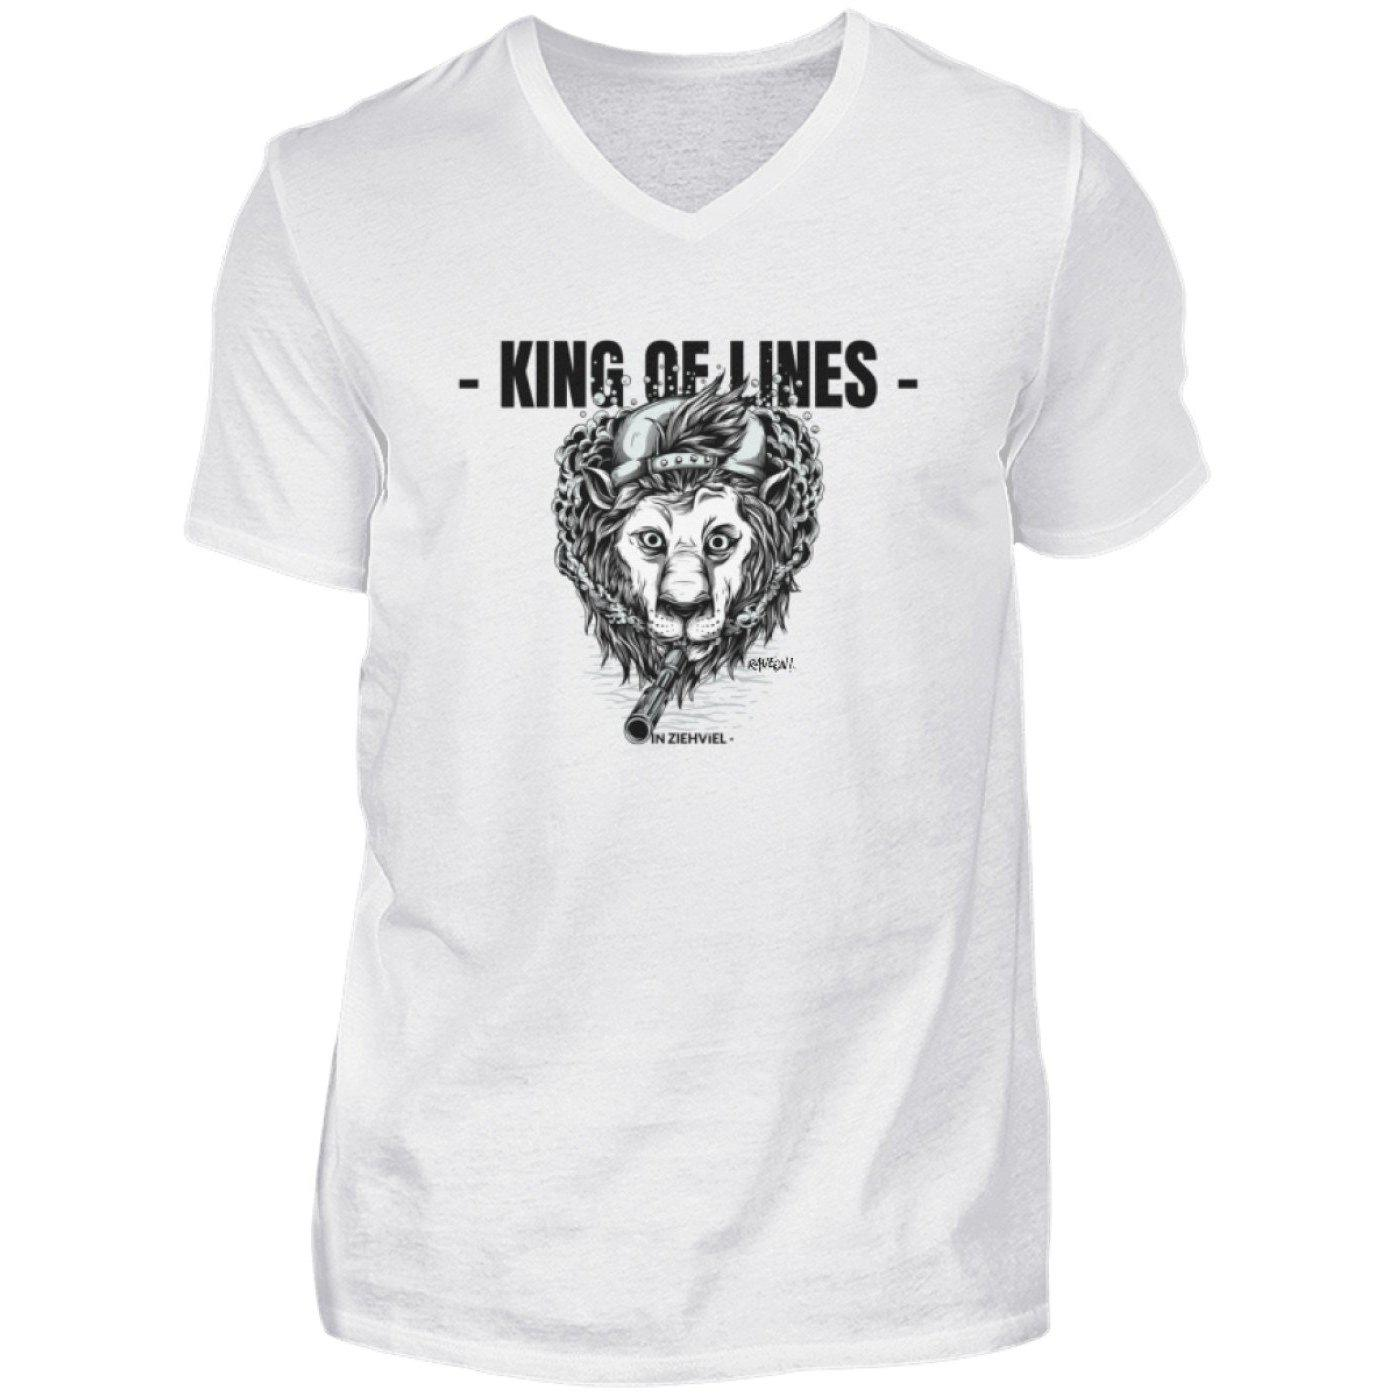 KING OF LINES - Rave On!® - Herren V-Neck Shirt V-Neck Herrenshirt White / S - Rave On!® der Club & Techno Szene Shop für Coole Junge Mode Streetwear Style & Fashion Outfits + Sexy Festival 420 Stuff